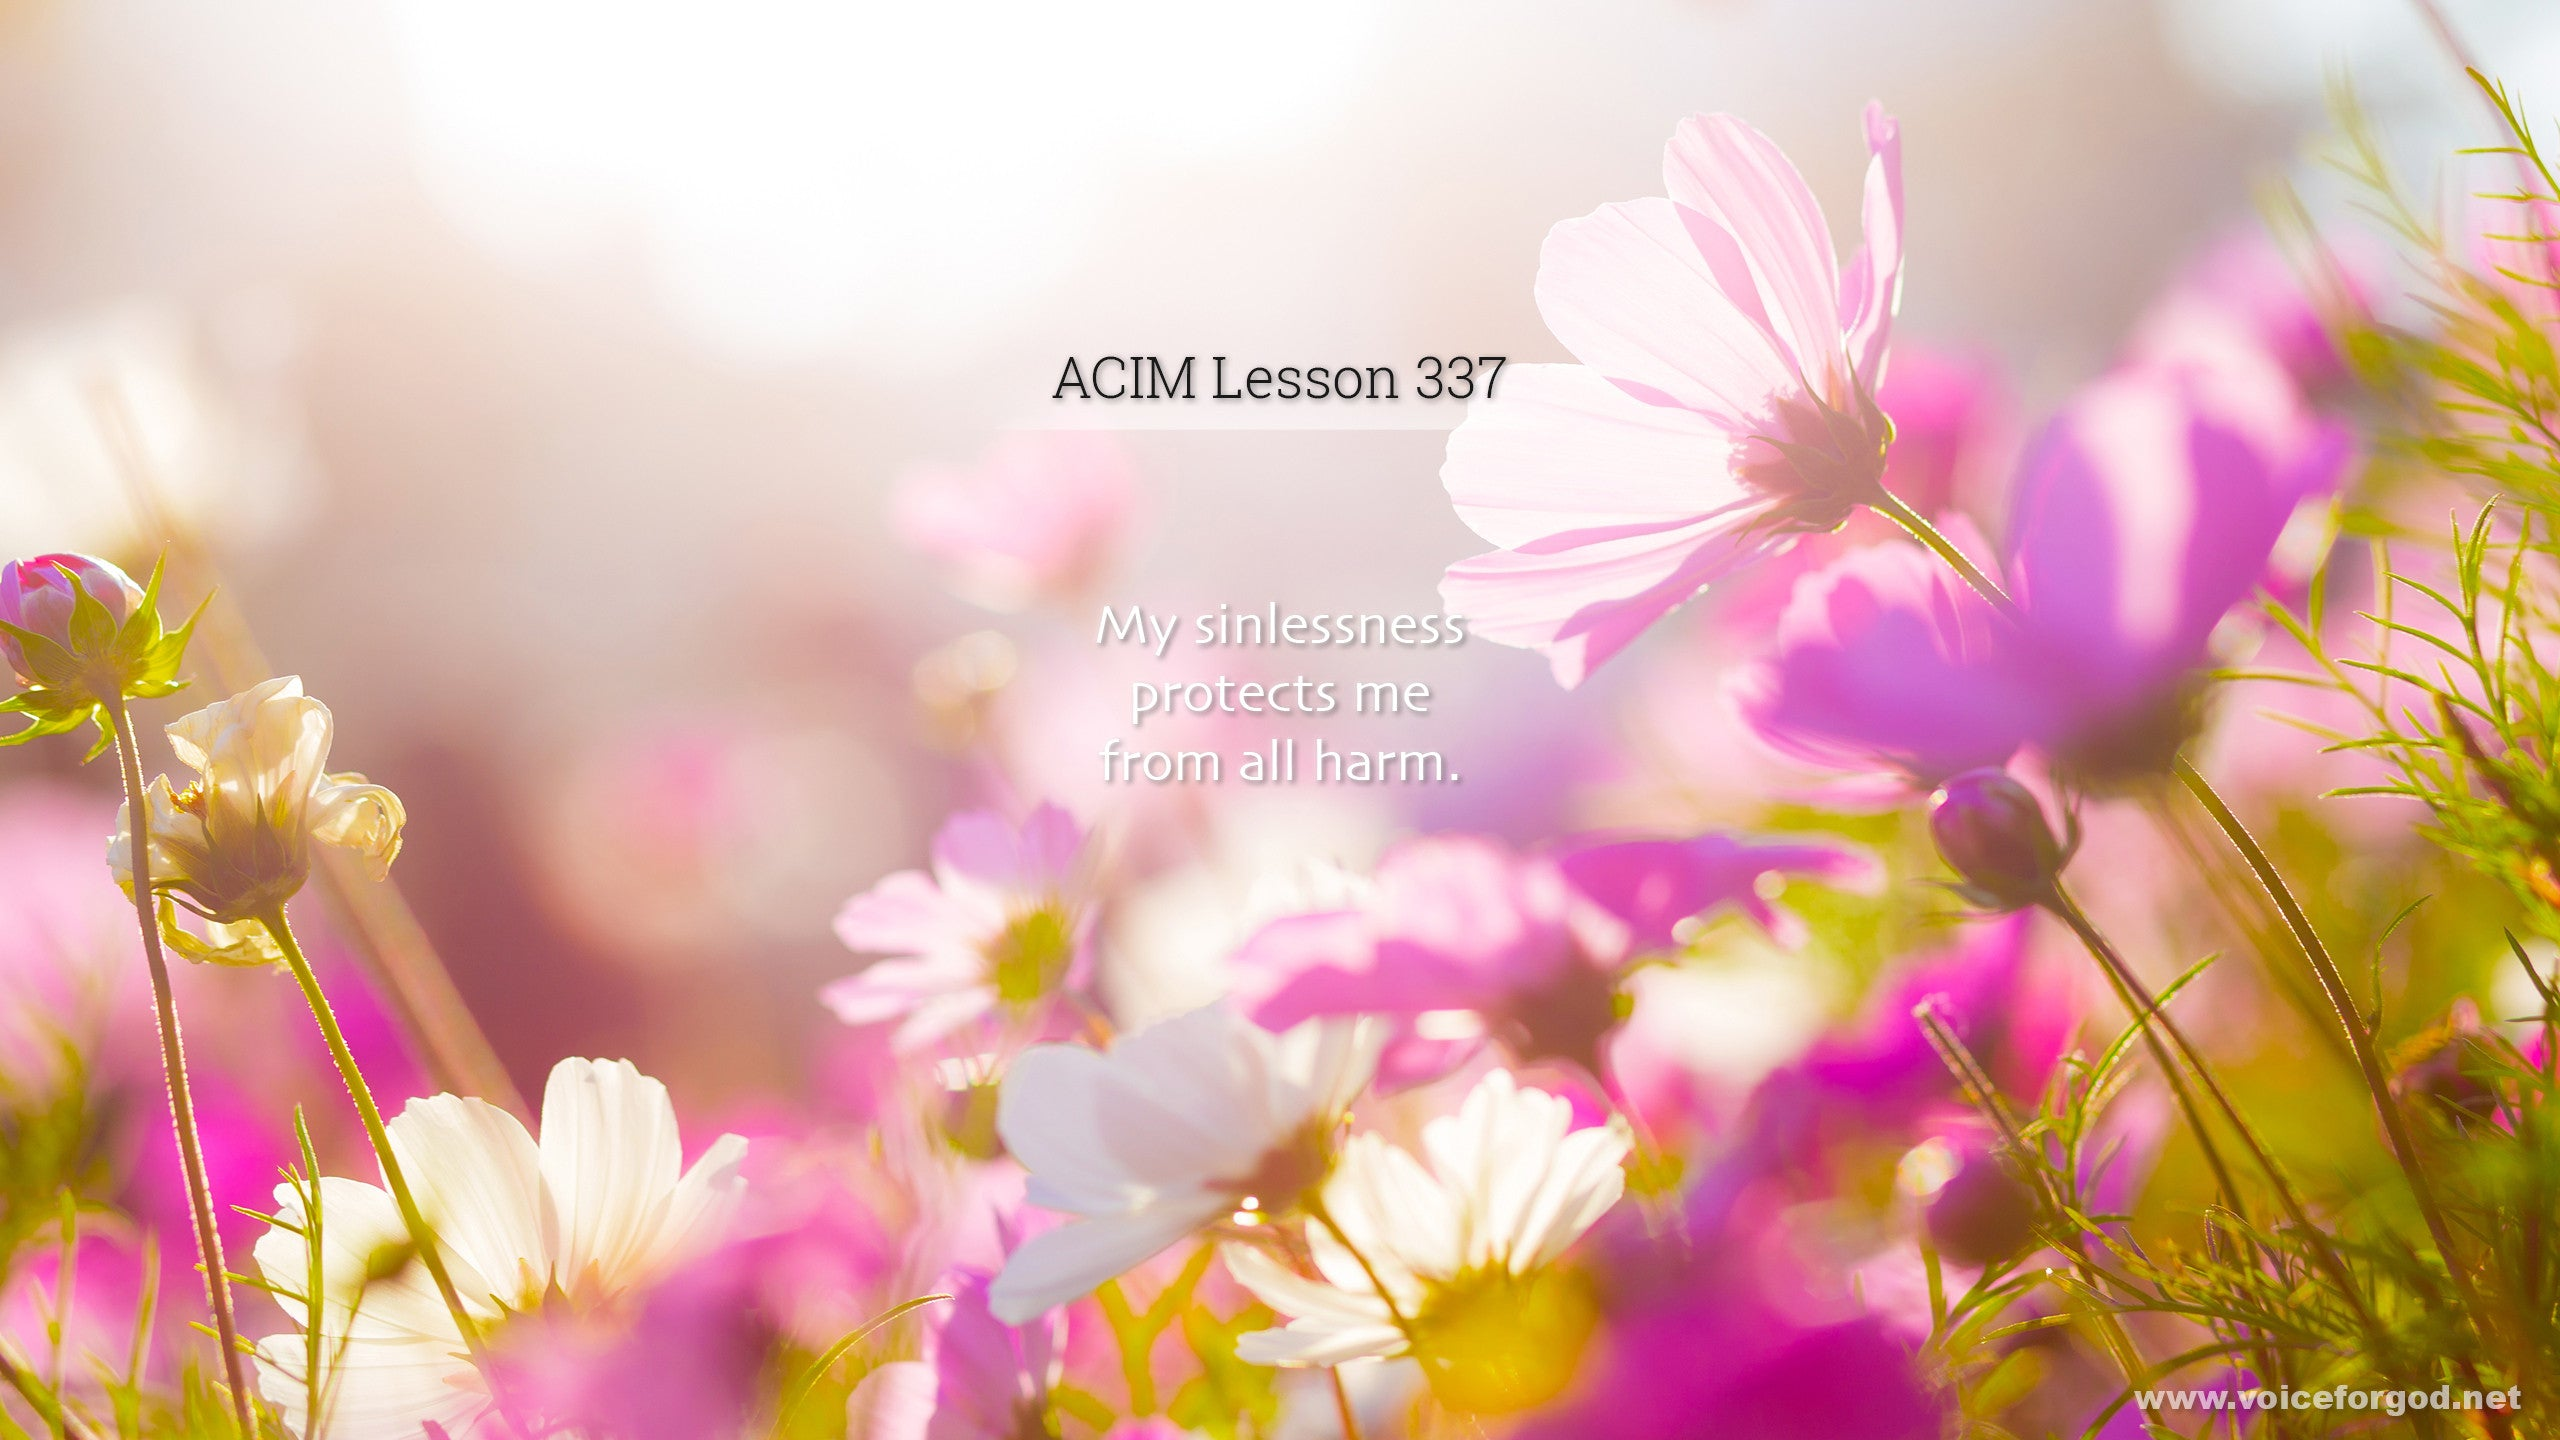 ACIM Lesson 337 - A Course in Miracles Workbook Lesson 337